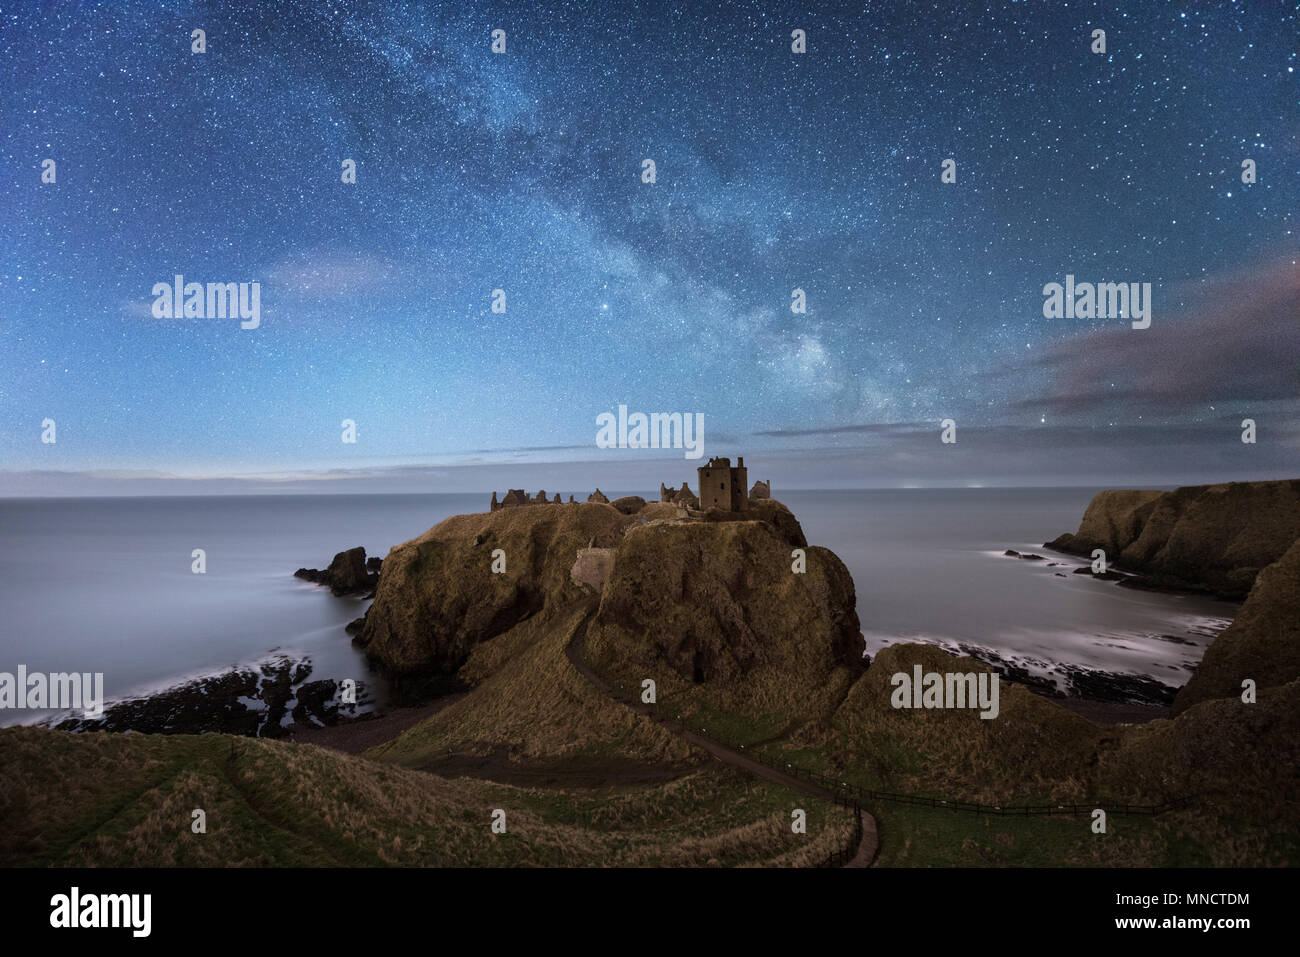 The Milky Way over Dunnottar Castle on the east coast of Scotland near Stonehaven in Aberdeenshire - Stock Image